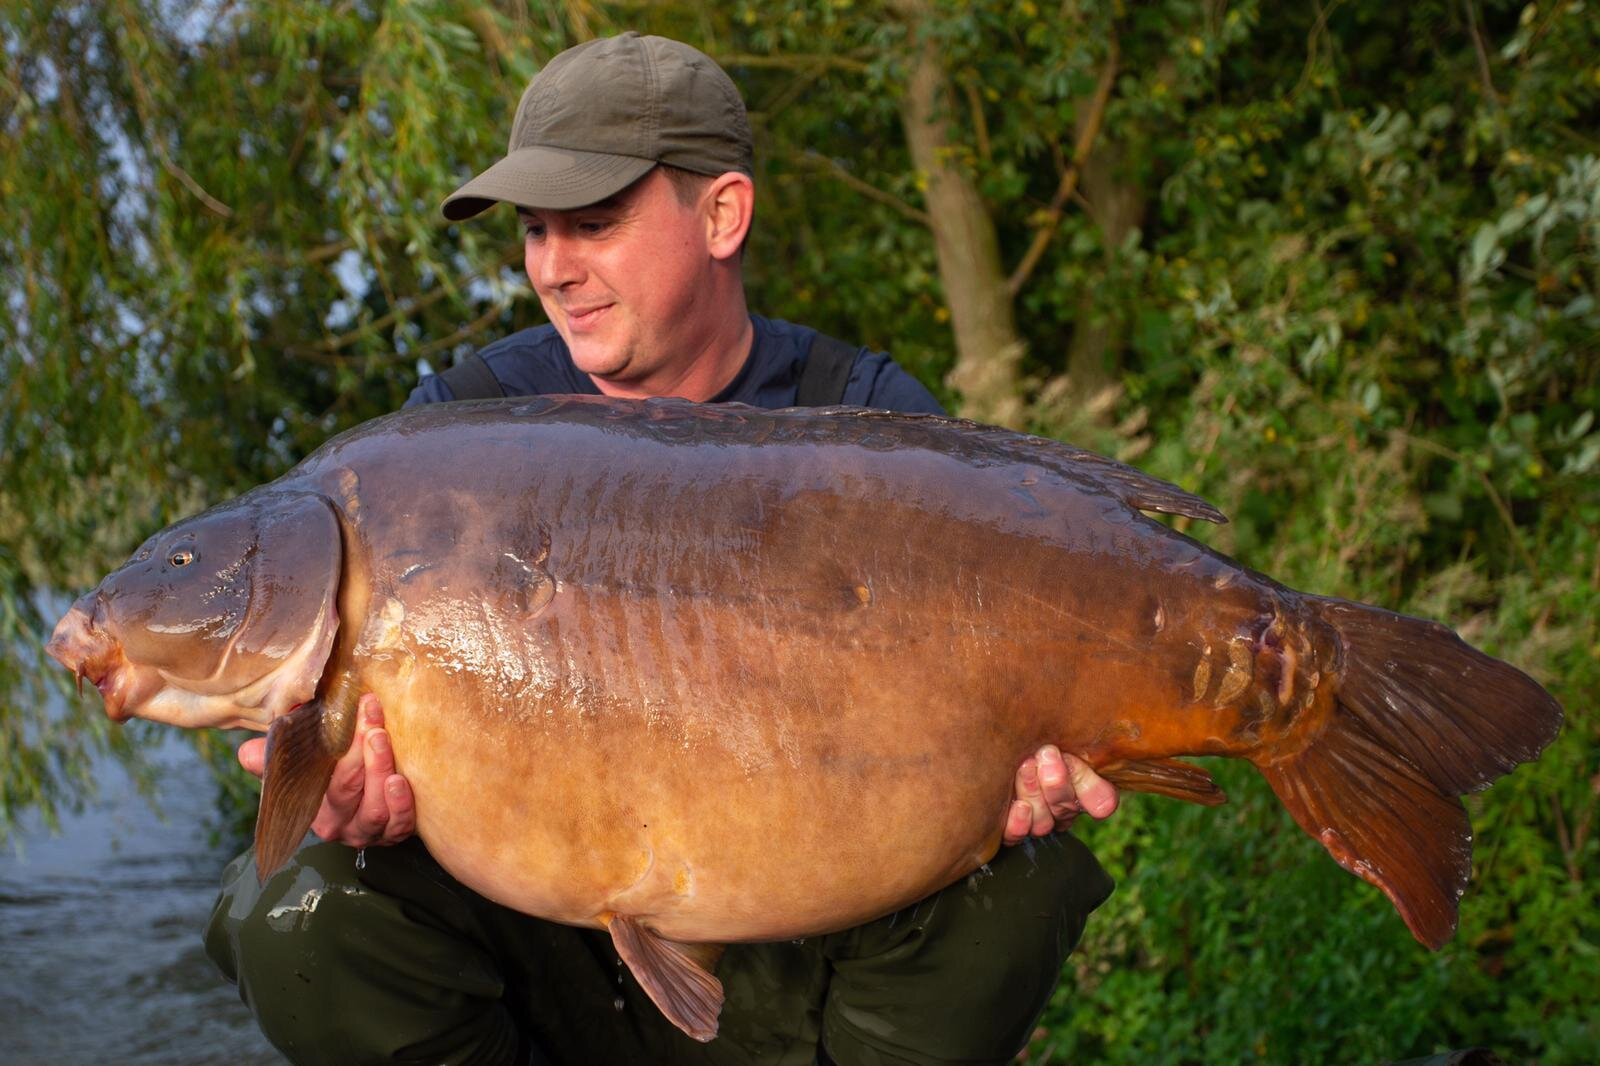 This beast weighed 65lb 12oz. The current official record is 68lb 1oz